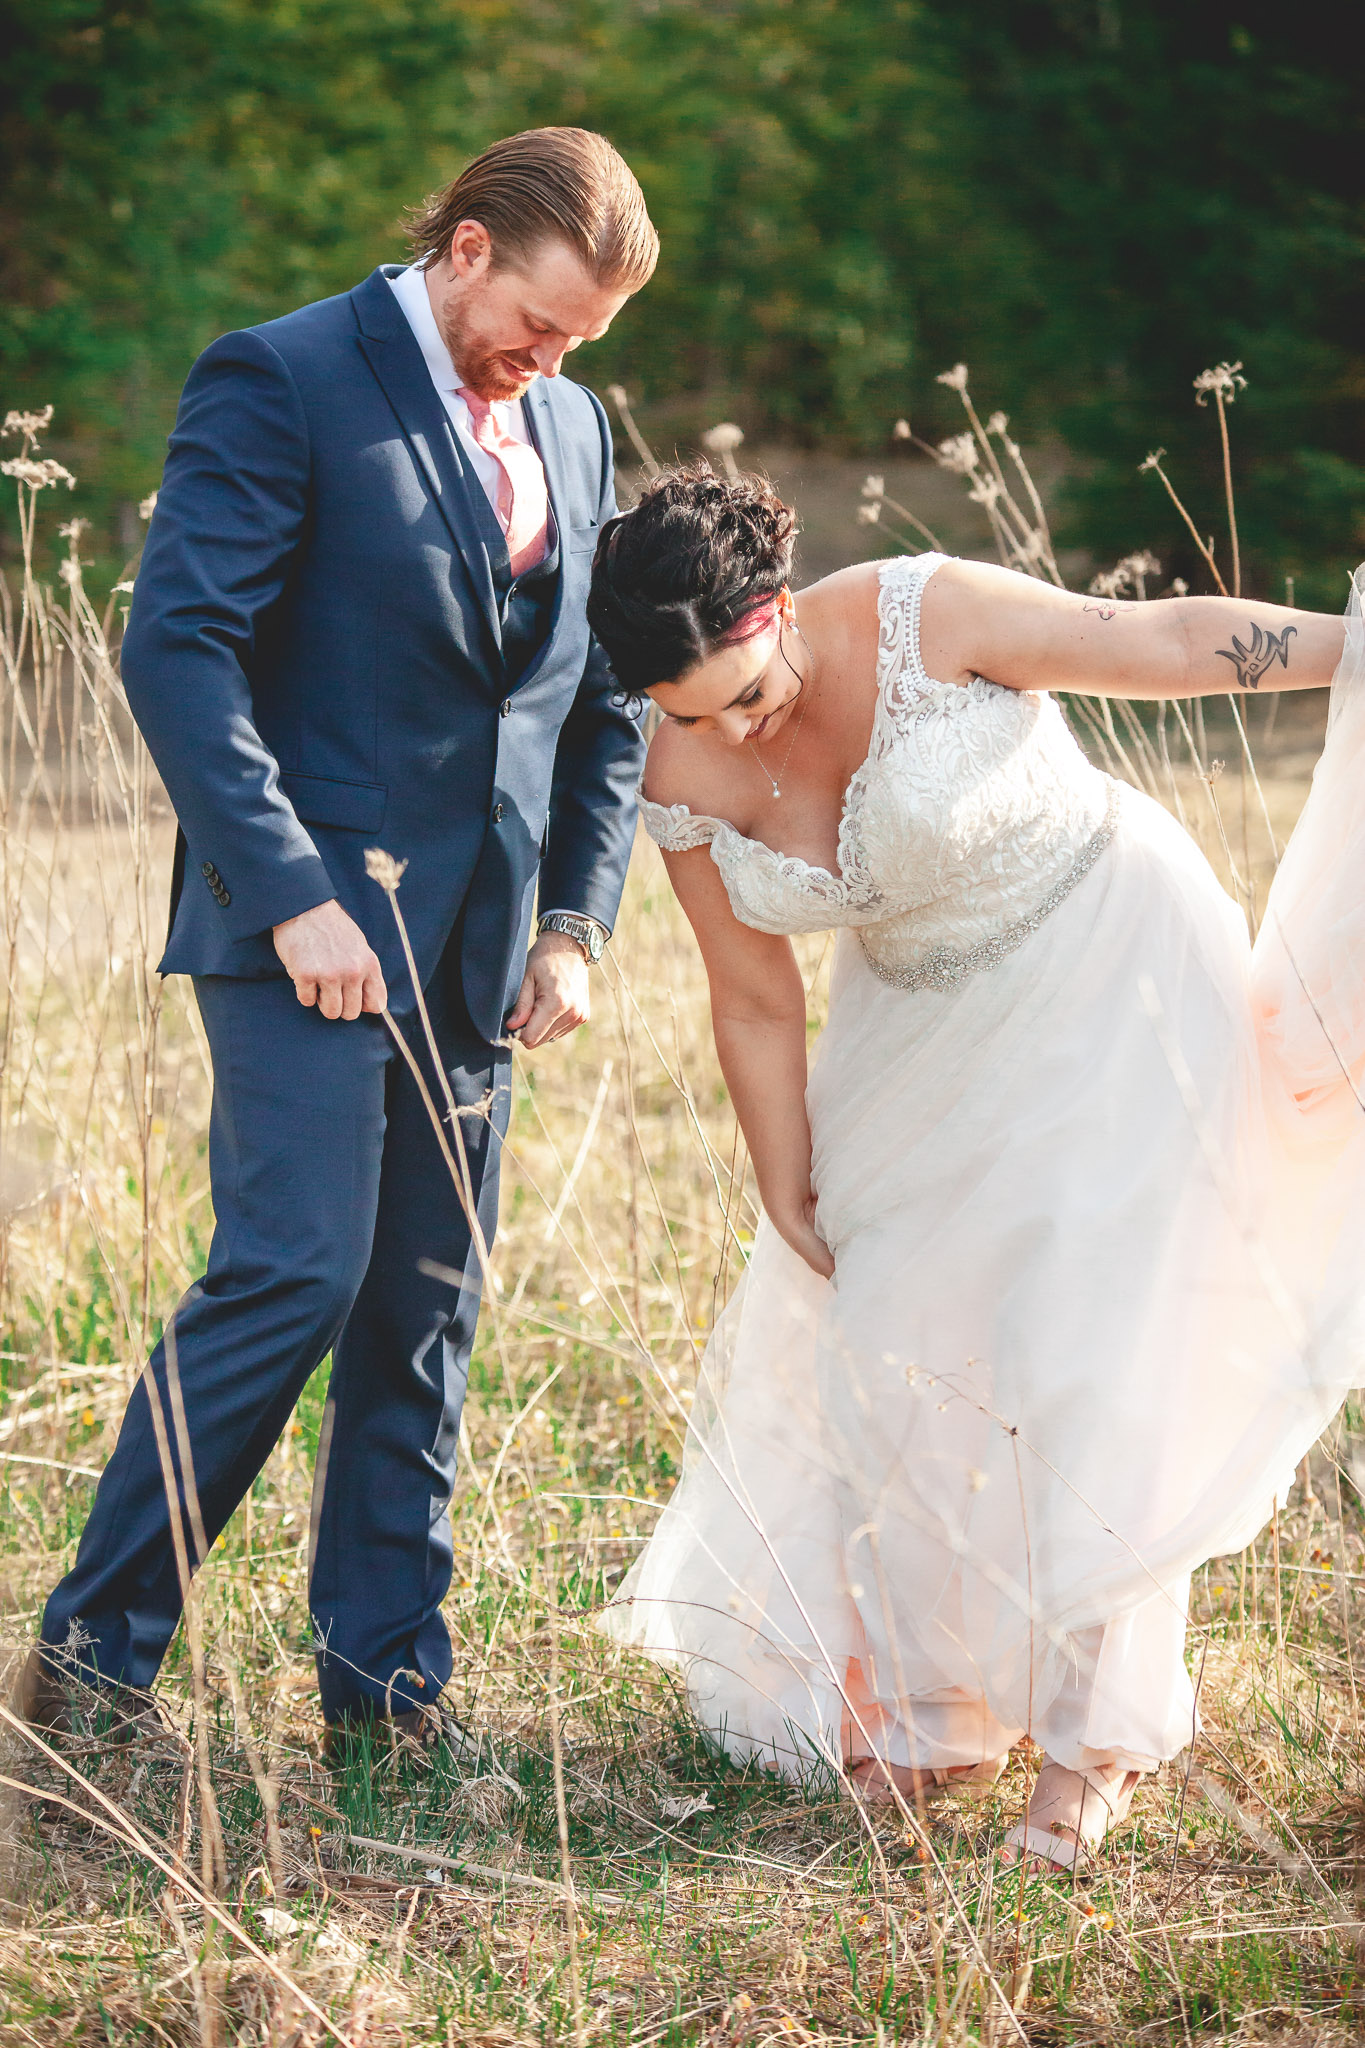 Amy D Photography- Bride and Groom-Barrie Wedding Photography Muskoka Wedding Photography Bride and Groom Poses Bride and Groom Train Tracks Snow Valley Wedding-91.jpg